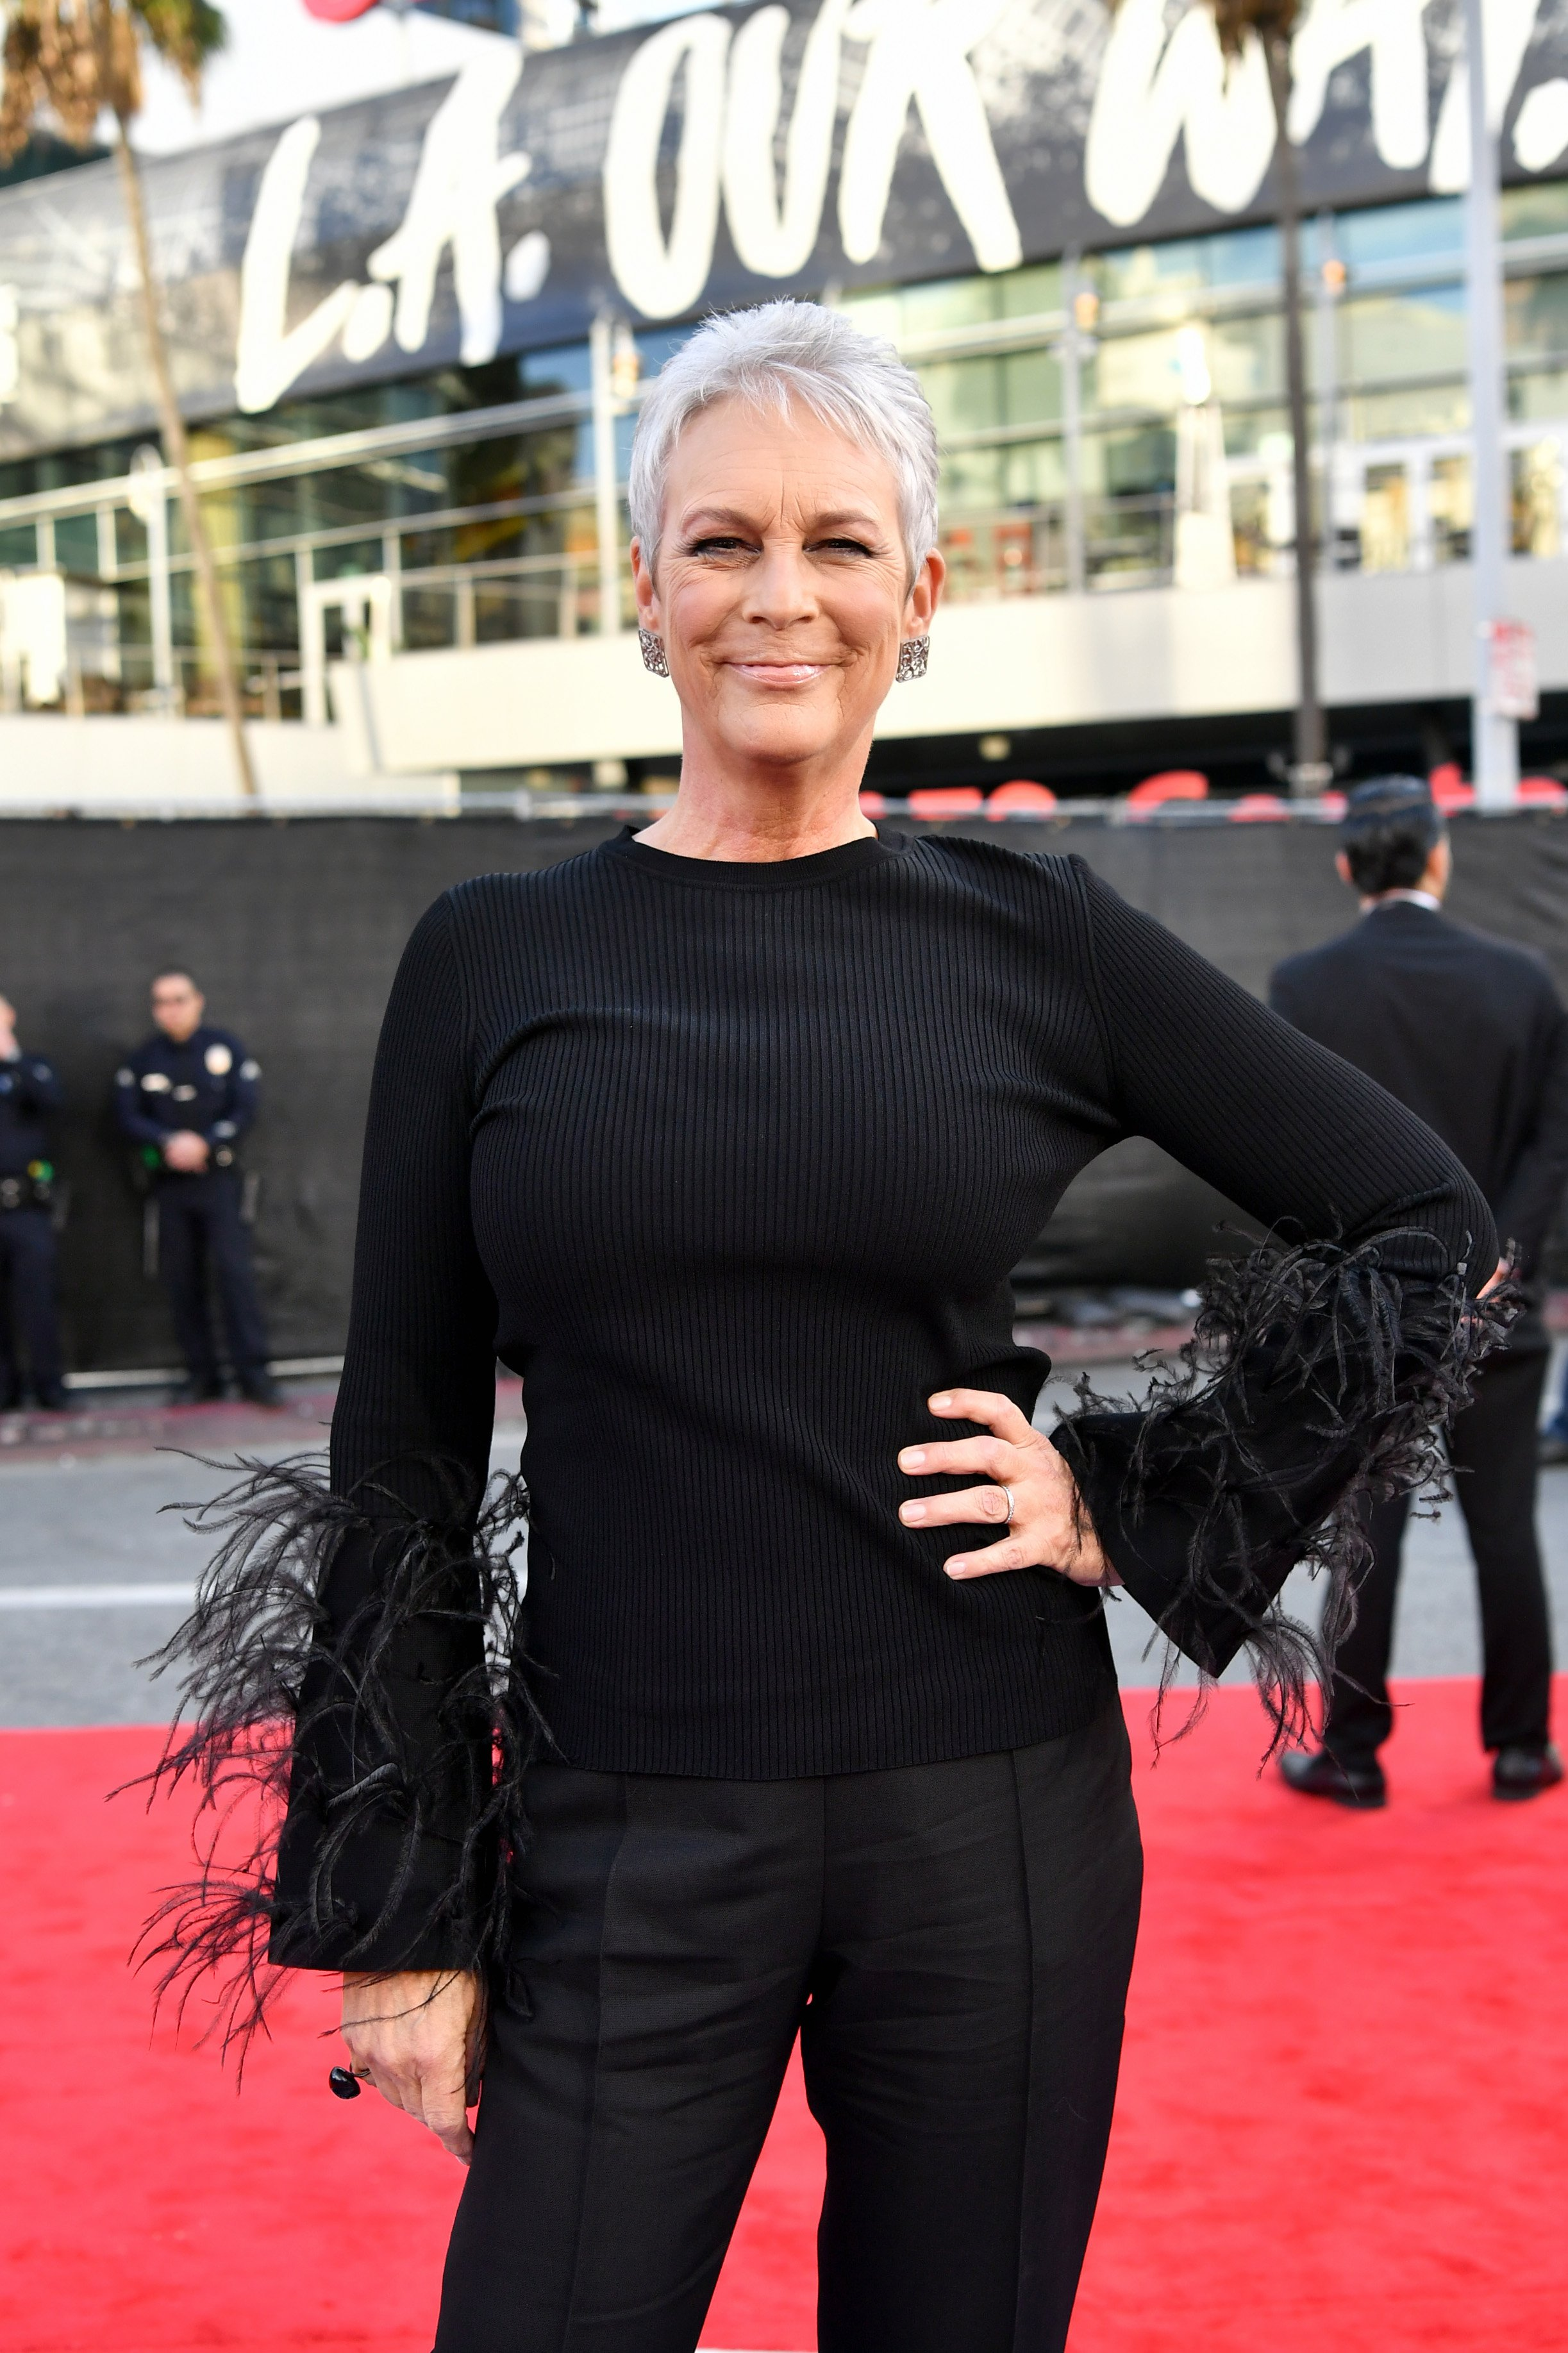 Jamie Lee Curtis on November 24, 2019 in Los Angeles, California | Source: Getty Images